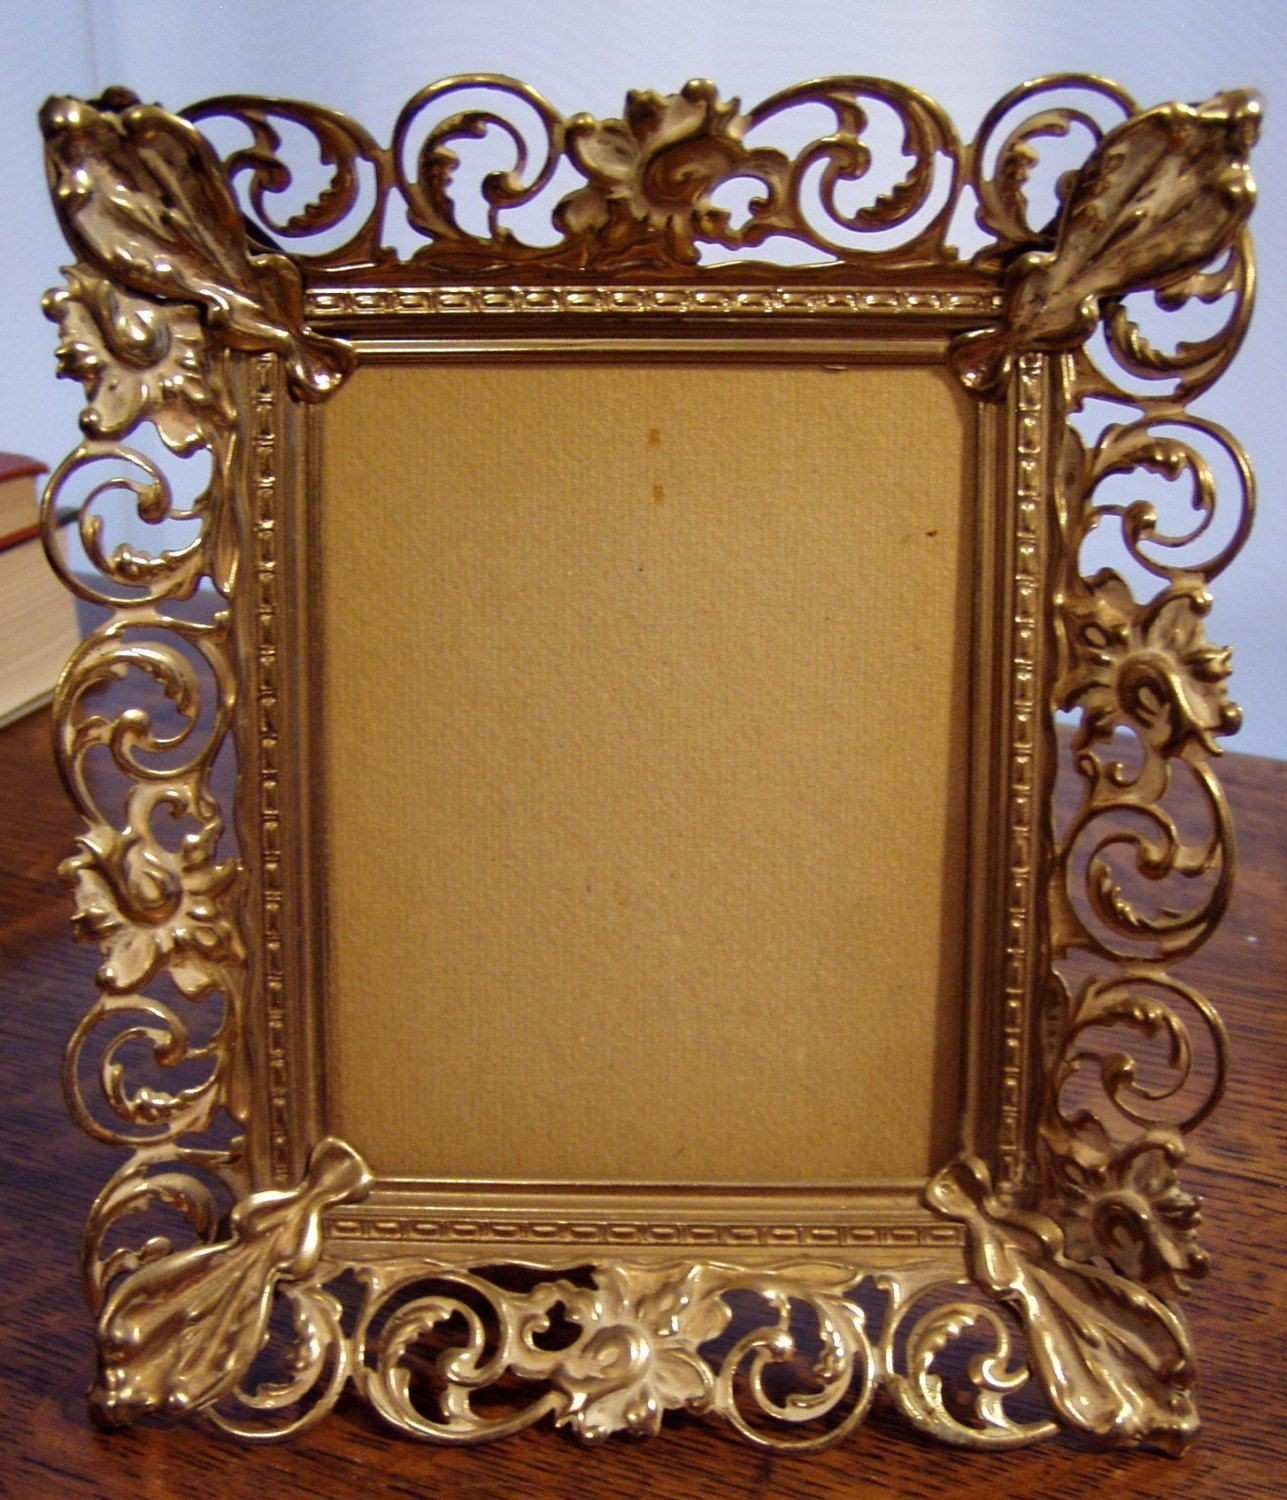 3 12 by 4 1 2 Inch Metal Filigree Frame with White Wash detail by